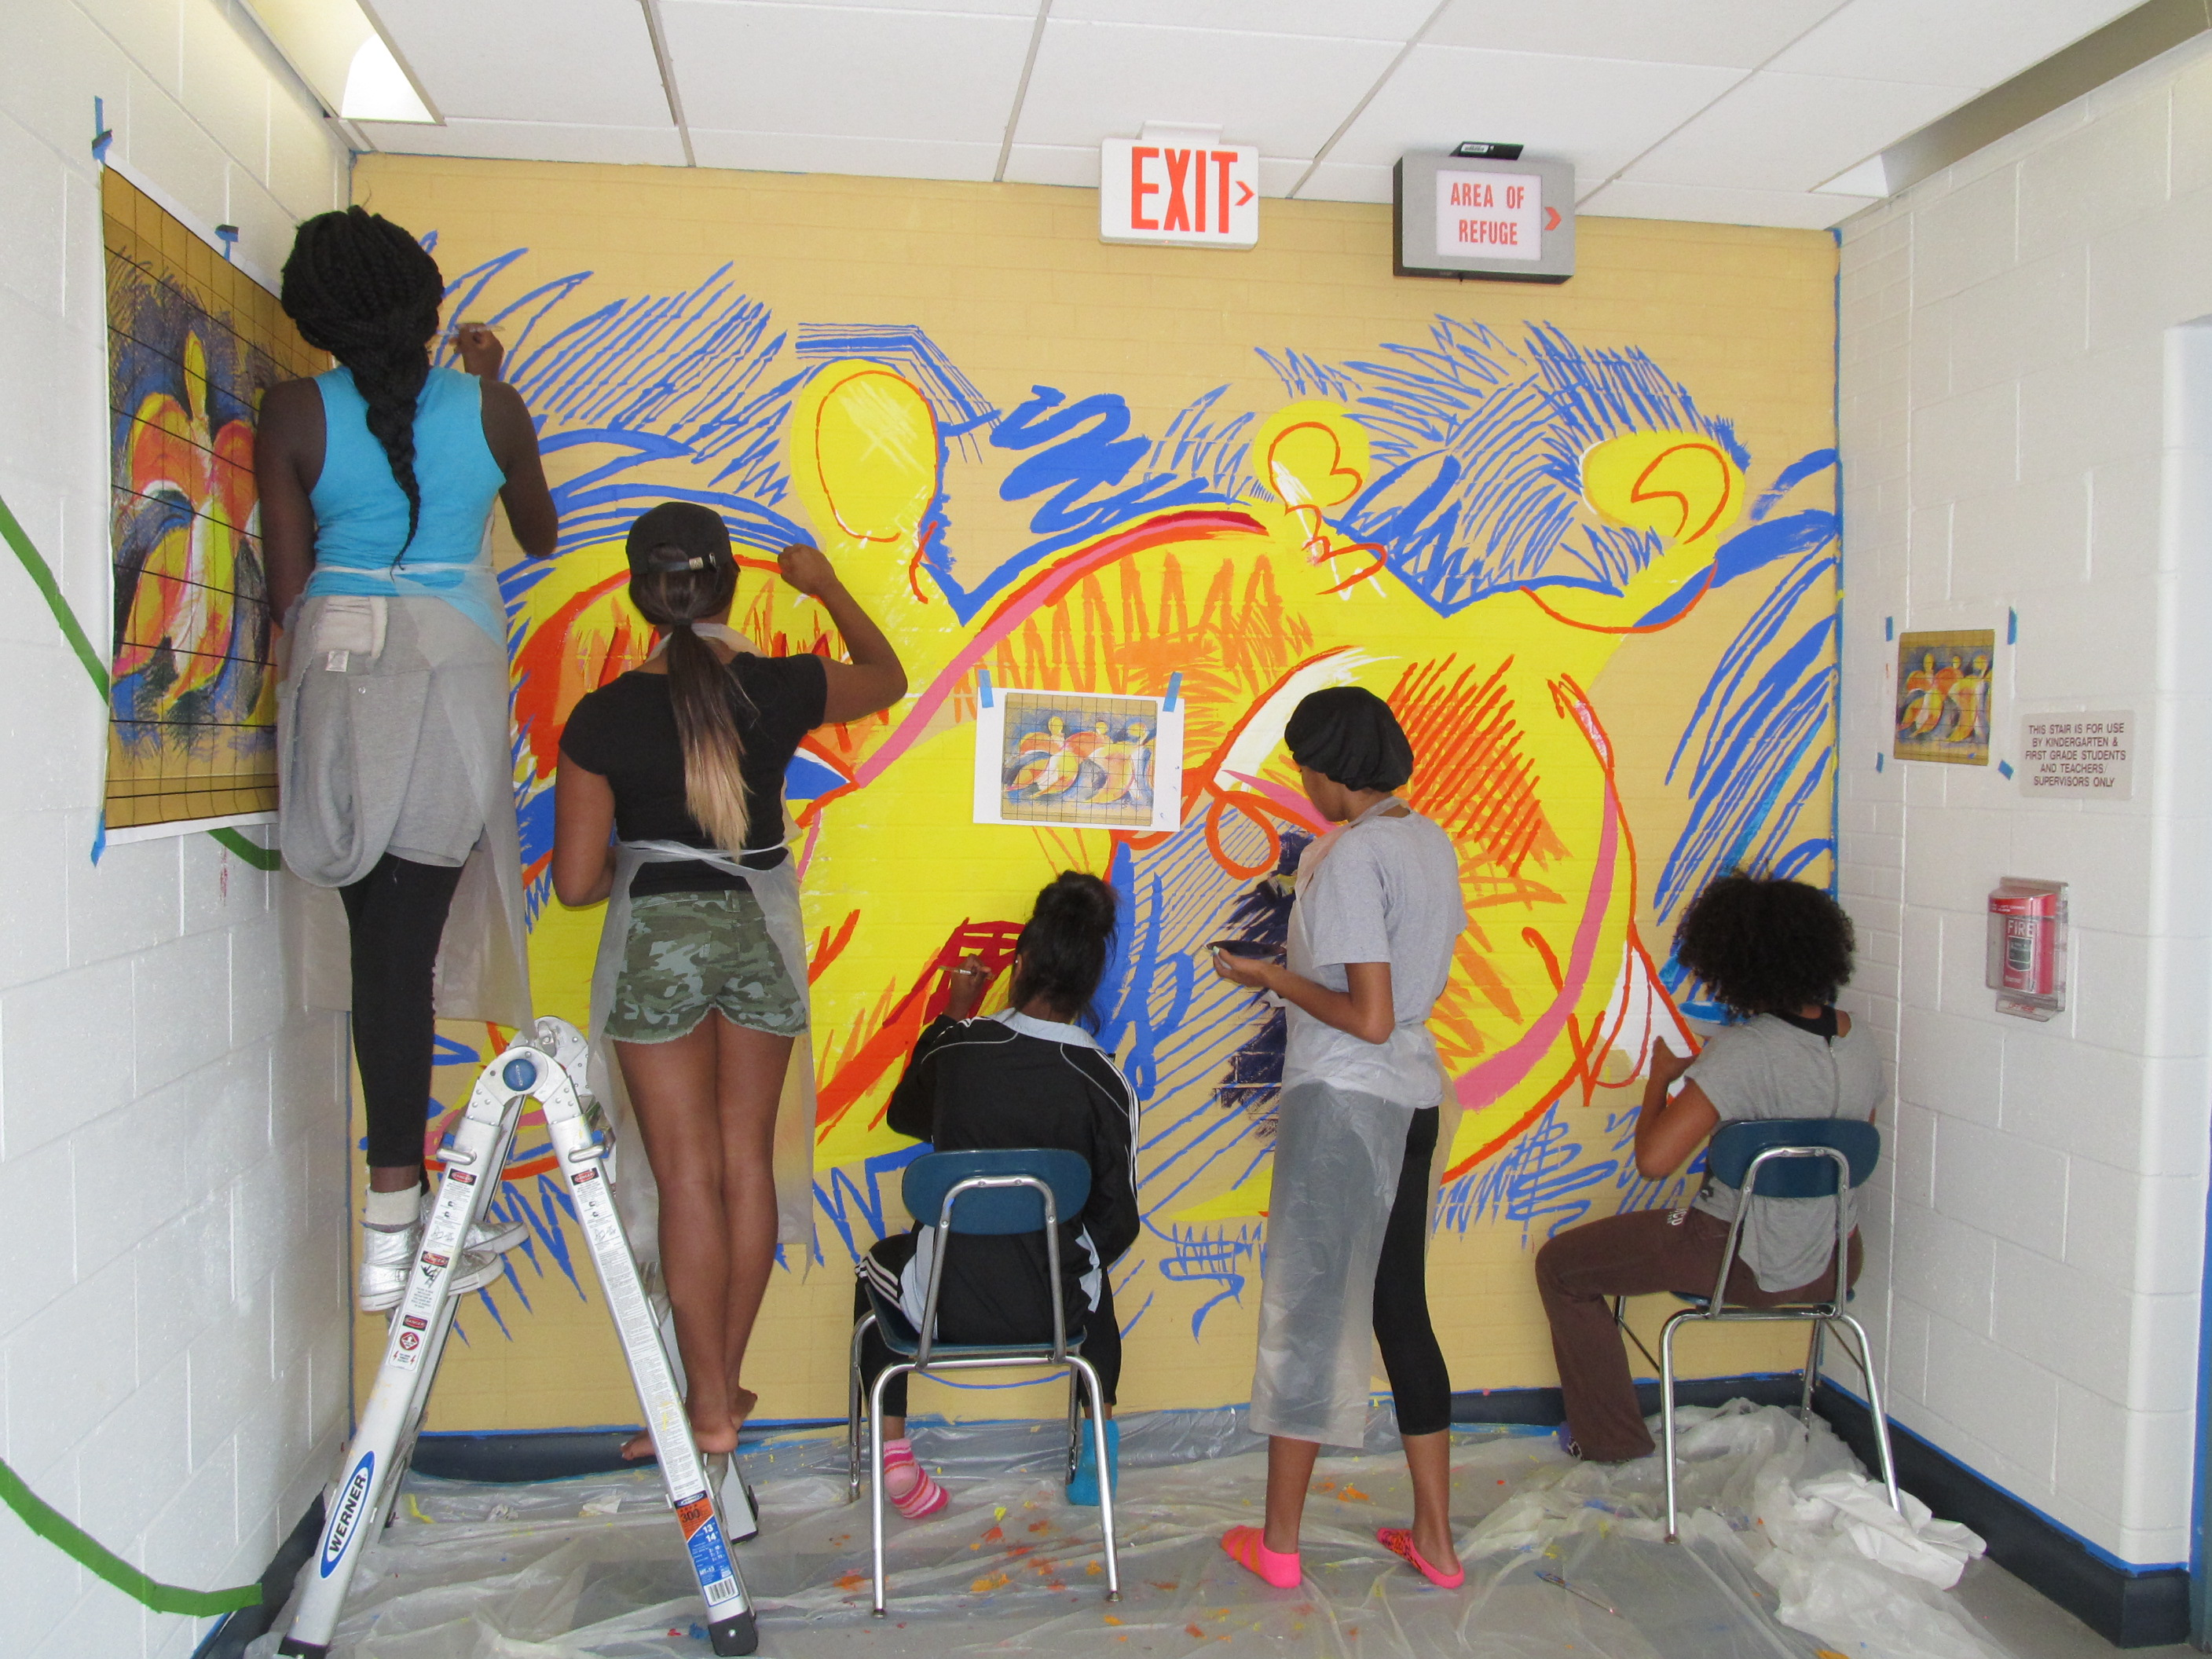 Students painting bright mural in a hallway